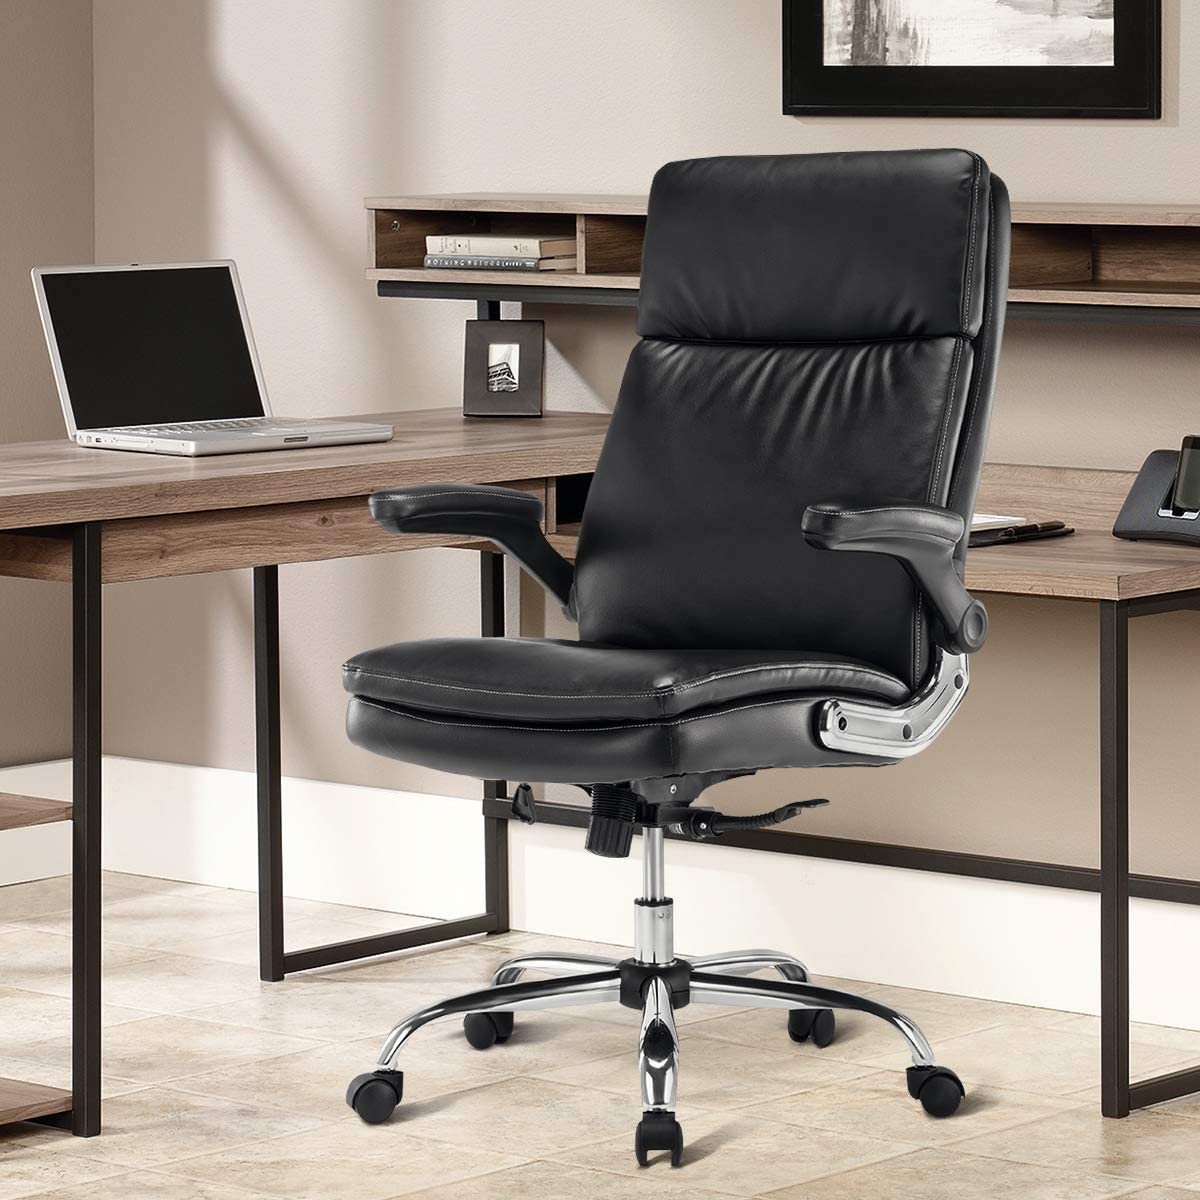 SP PU Office Chair Adjustable Tilt Angle and Flip-up Arms Executive Computer Desk Chair, Thick Padding for Comfort and Ergonomic Design for Lumbar Support 6133BK